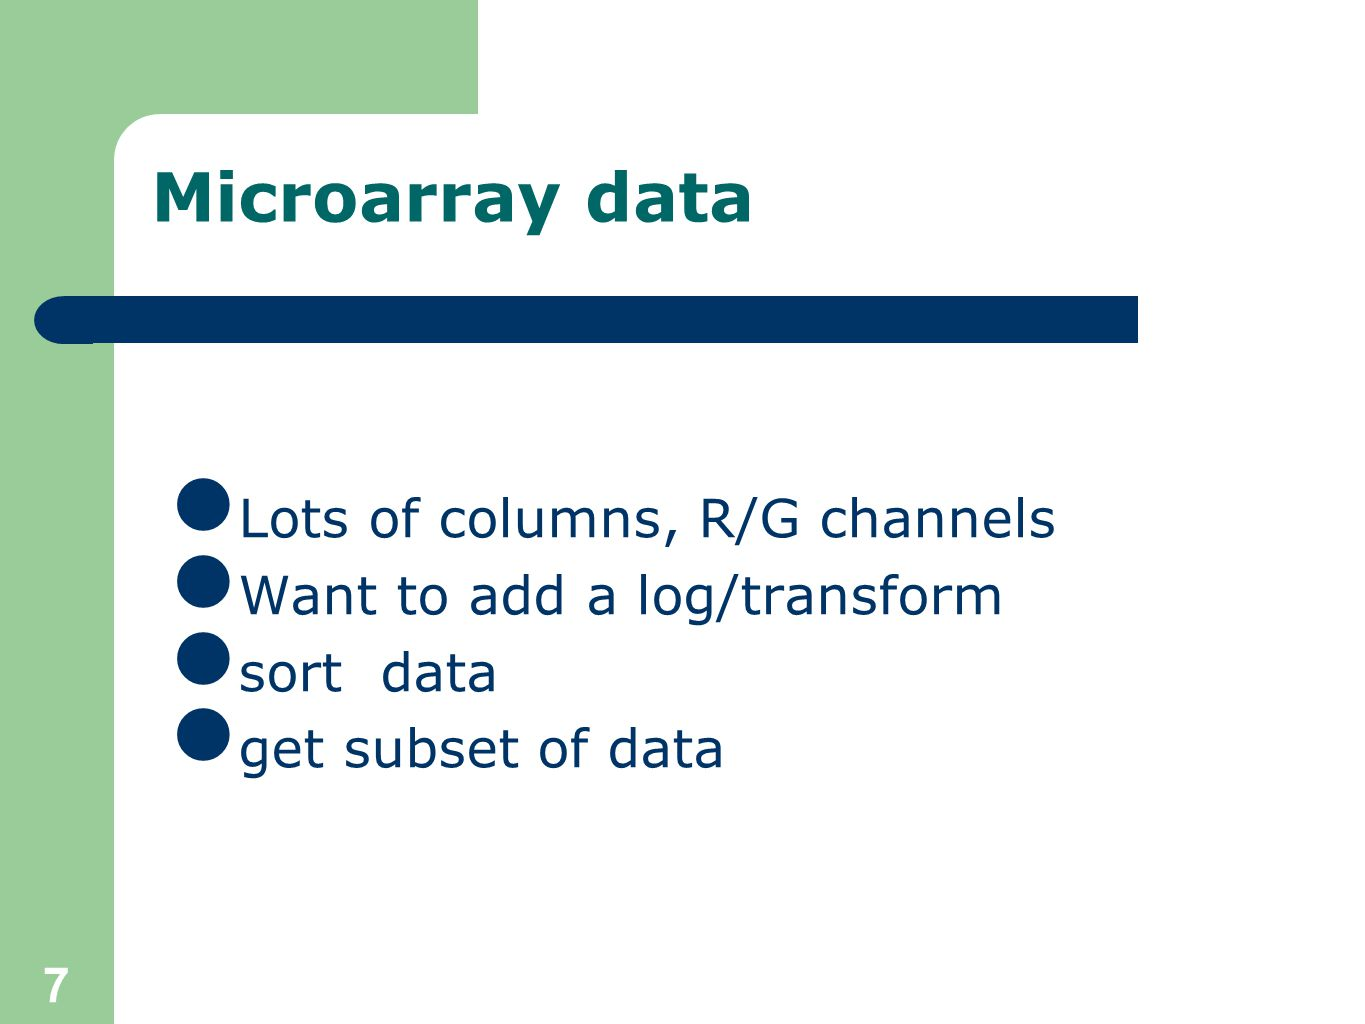 7 Microarray data Lots of columns, R/G channels Want to add a log/transform sort data get subset of data